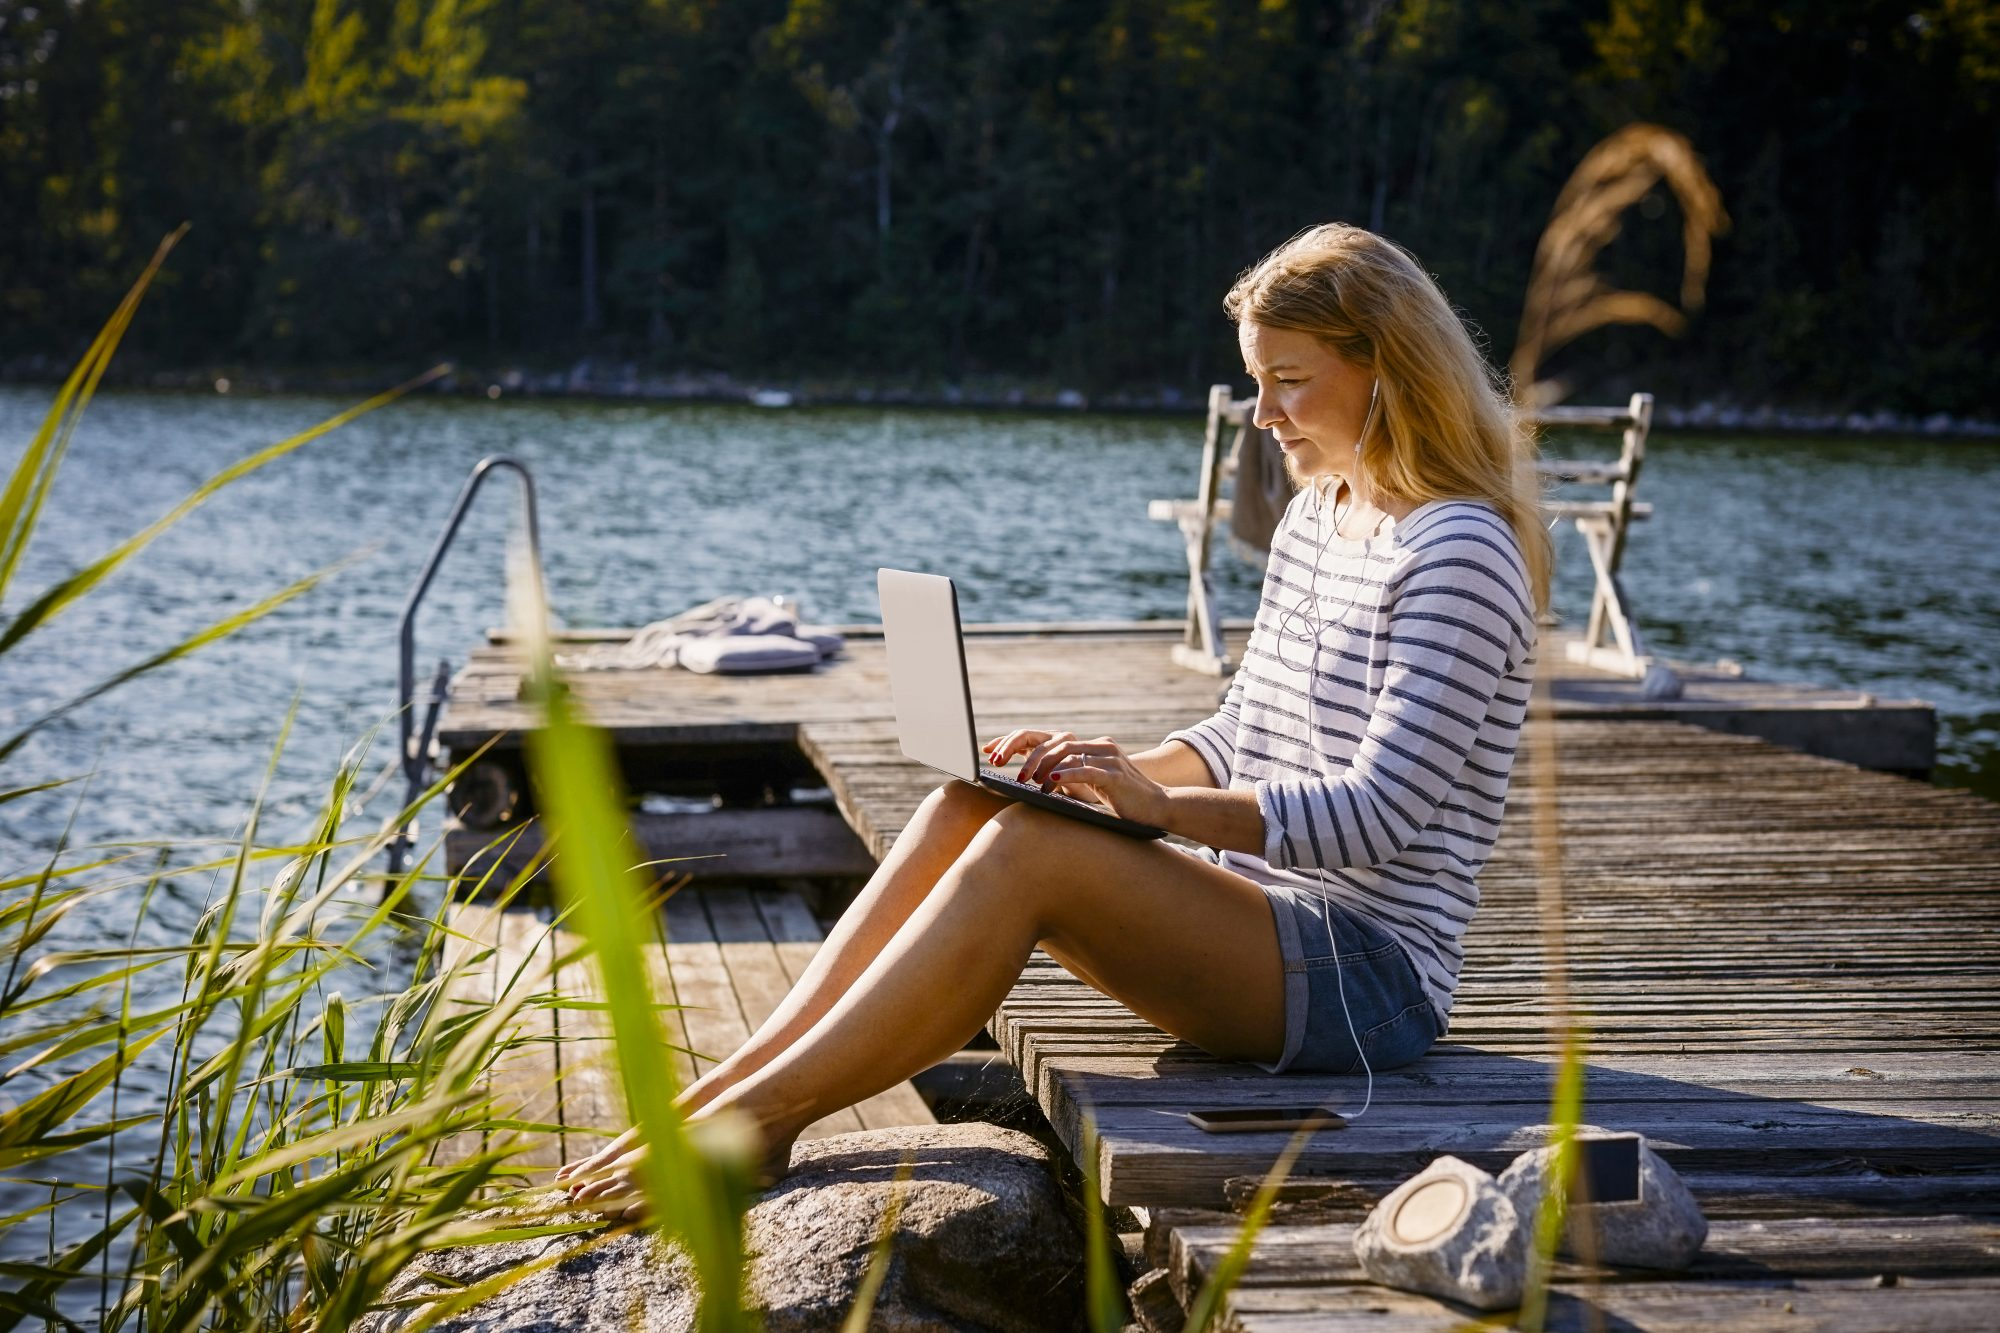 woman working remotely outdoors on lake dock